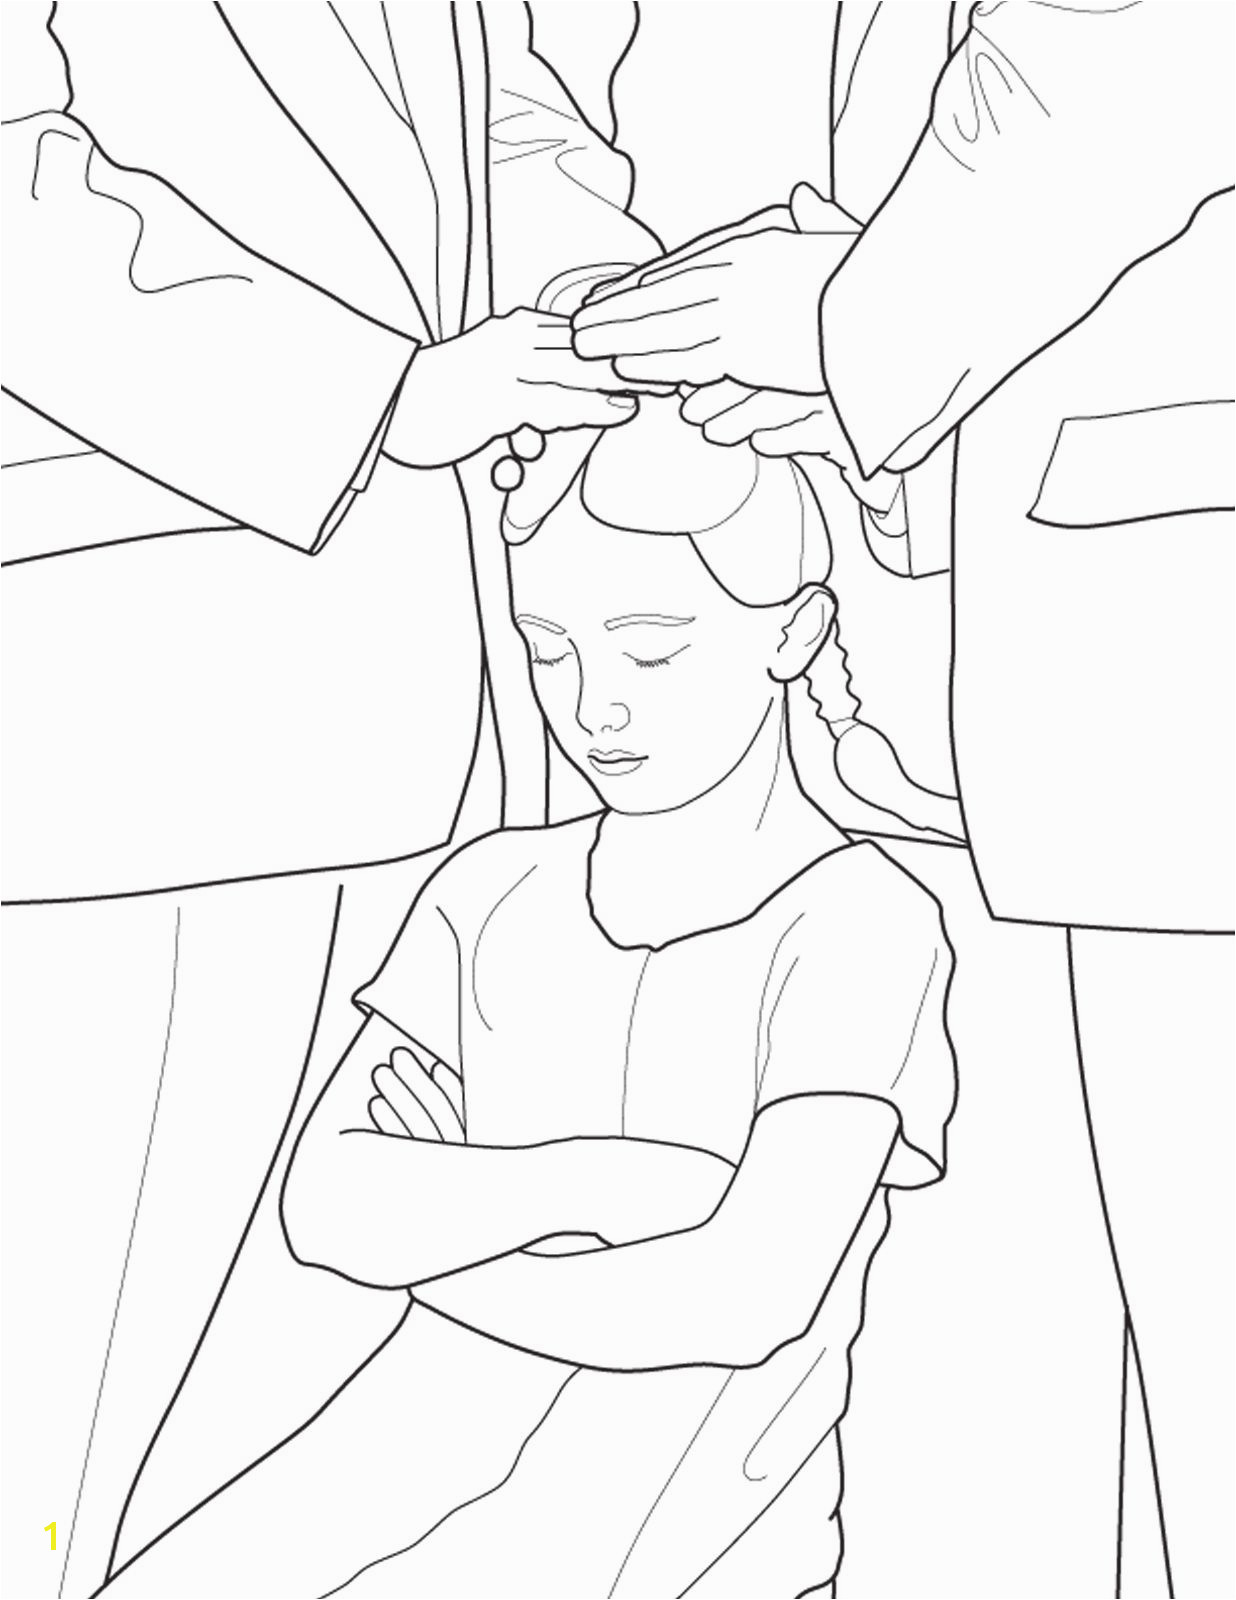 A Primary coloring page from the LDS Church A girl is confirmed following baptism